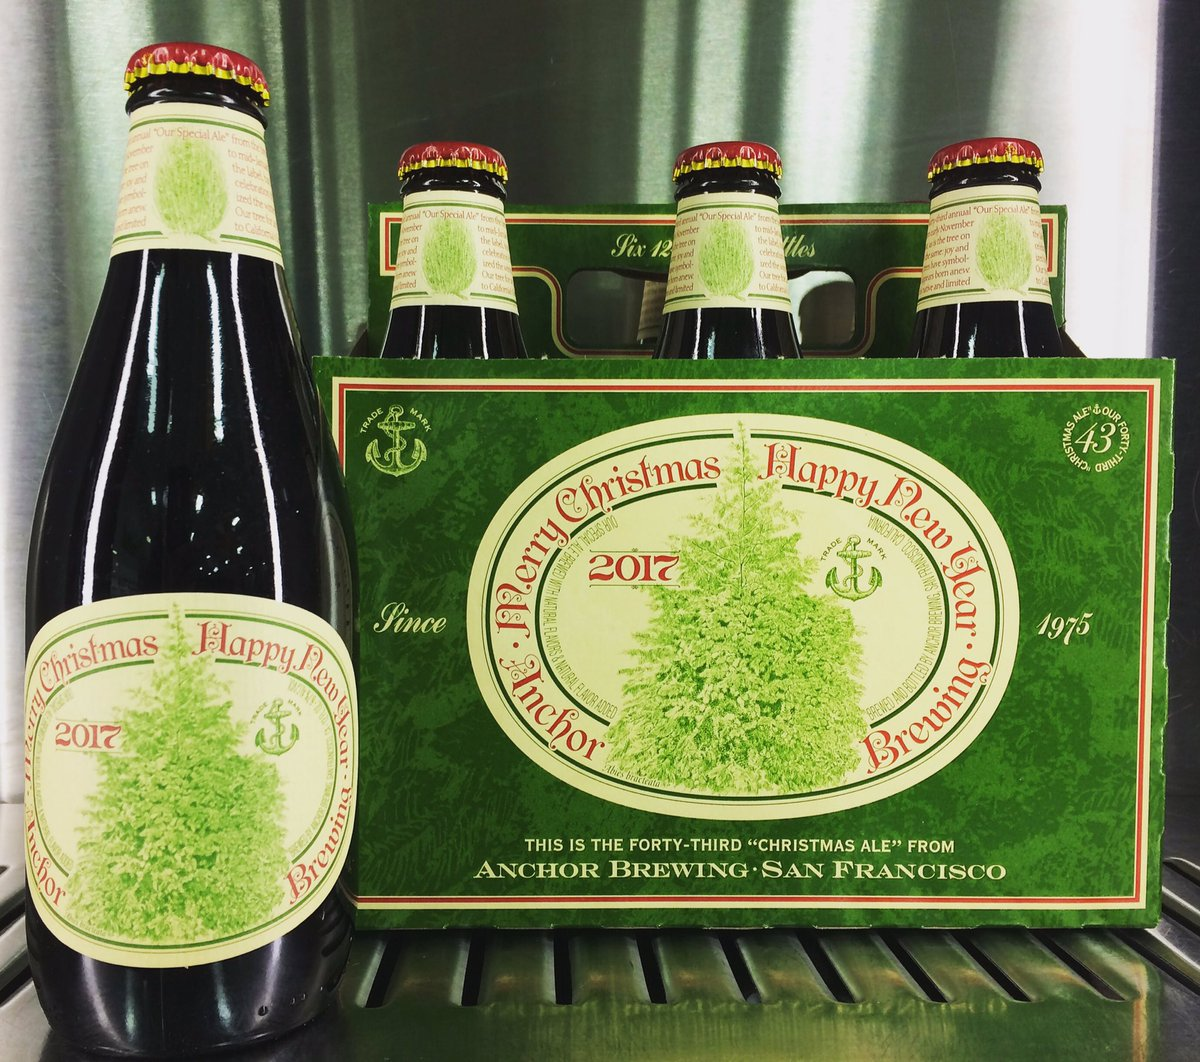 toffee and roasted nuts and subtle hints of honey and herbal spice this years brew marks the 43rd annual release of this anchor tradition new tree - Anchor Brewing Christmas Ale